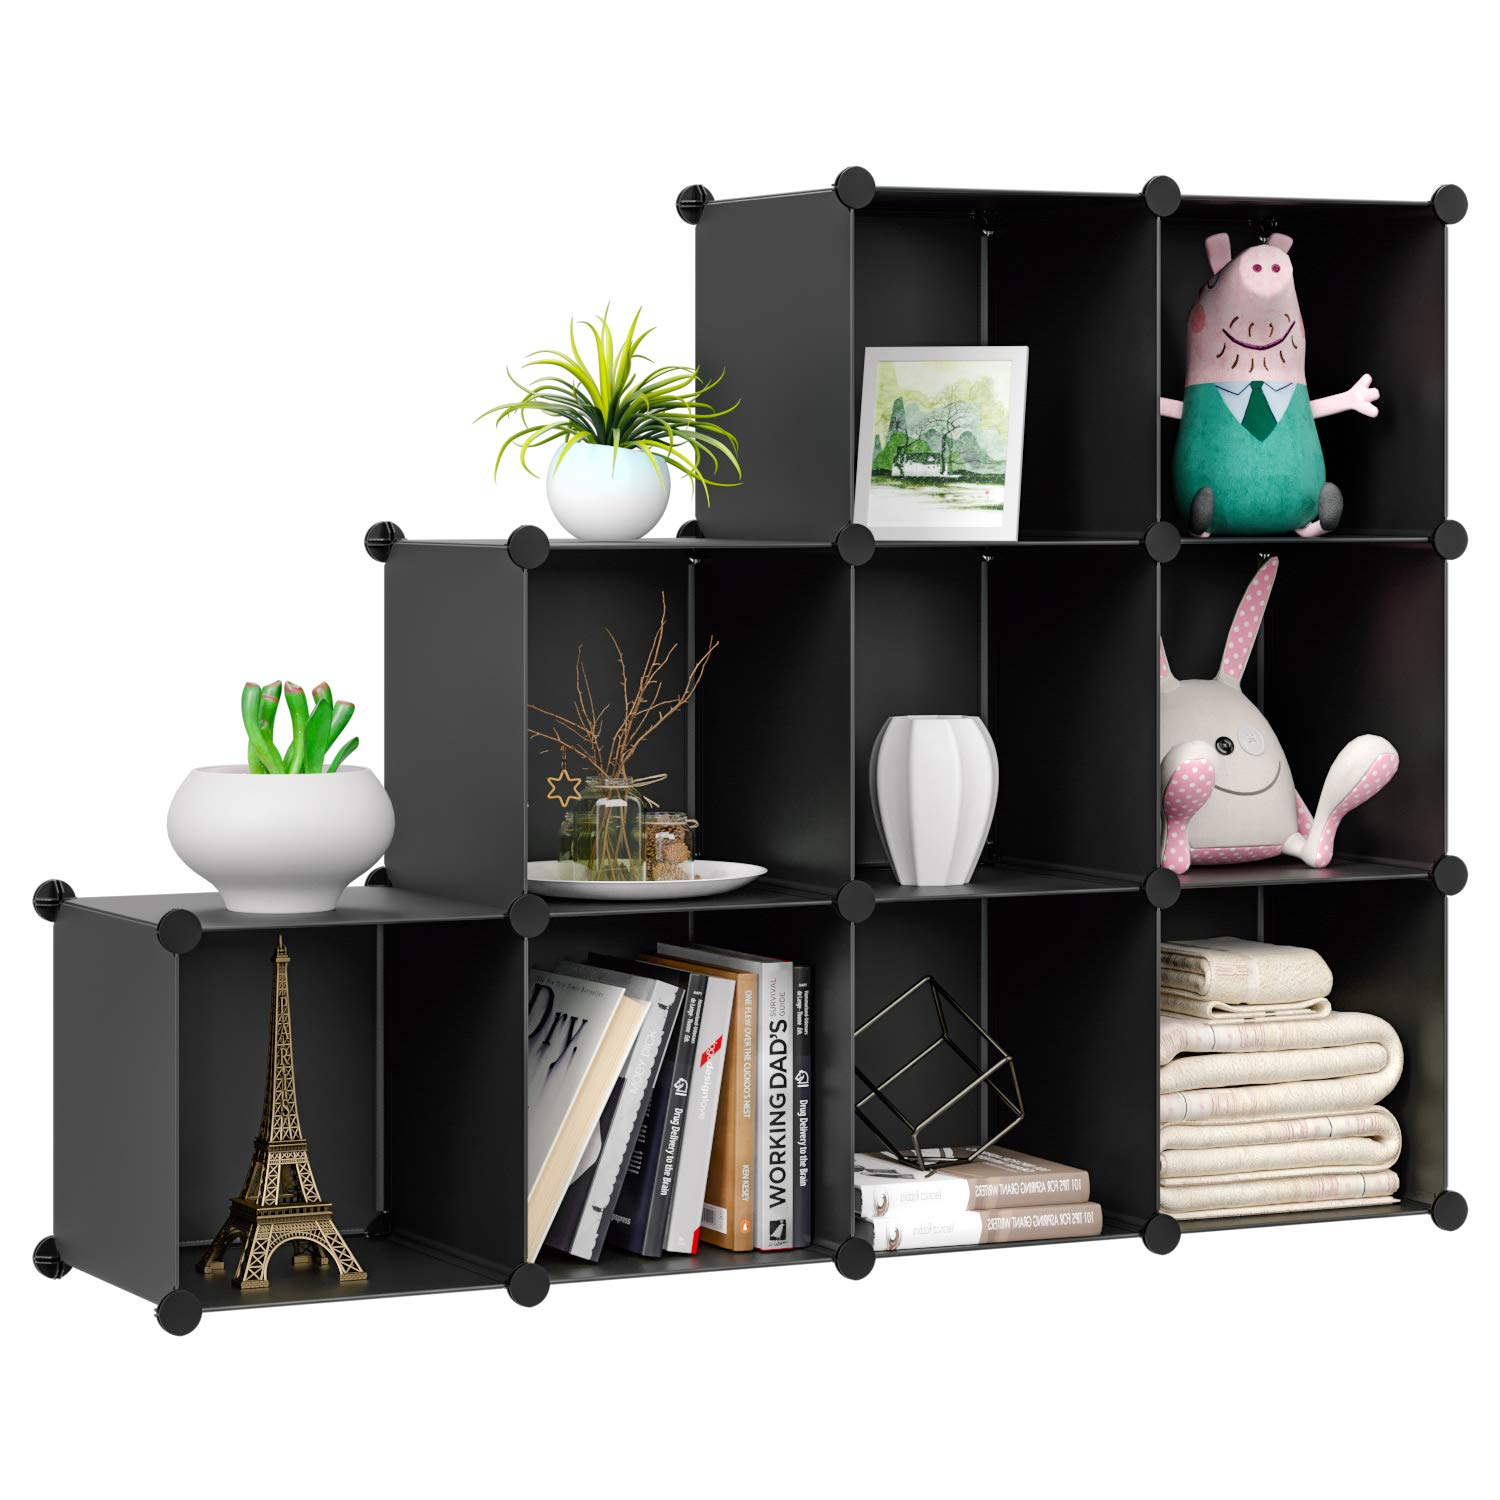 HOMFA Cube Storage Organizer, Shoe Rack, 9 Cubes DIY Plastic Modular Closet Cabinet Storage Organizer, Living Room Office Bookcases Shelves for Books, Cloths, Toys, Shoes, Arts, Black by Homfa